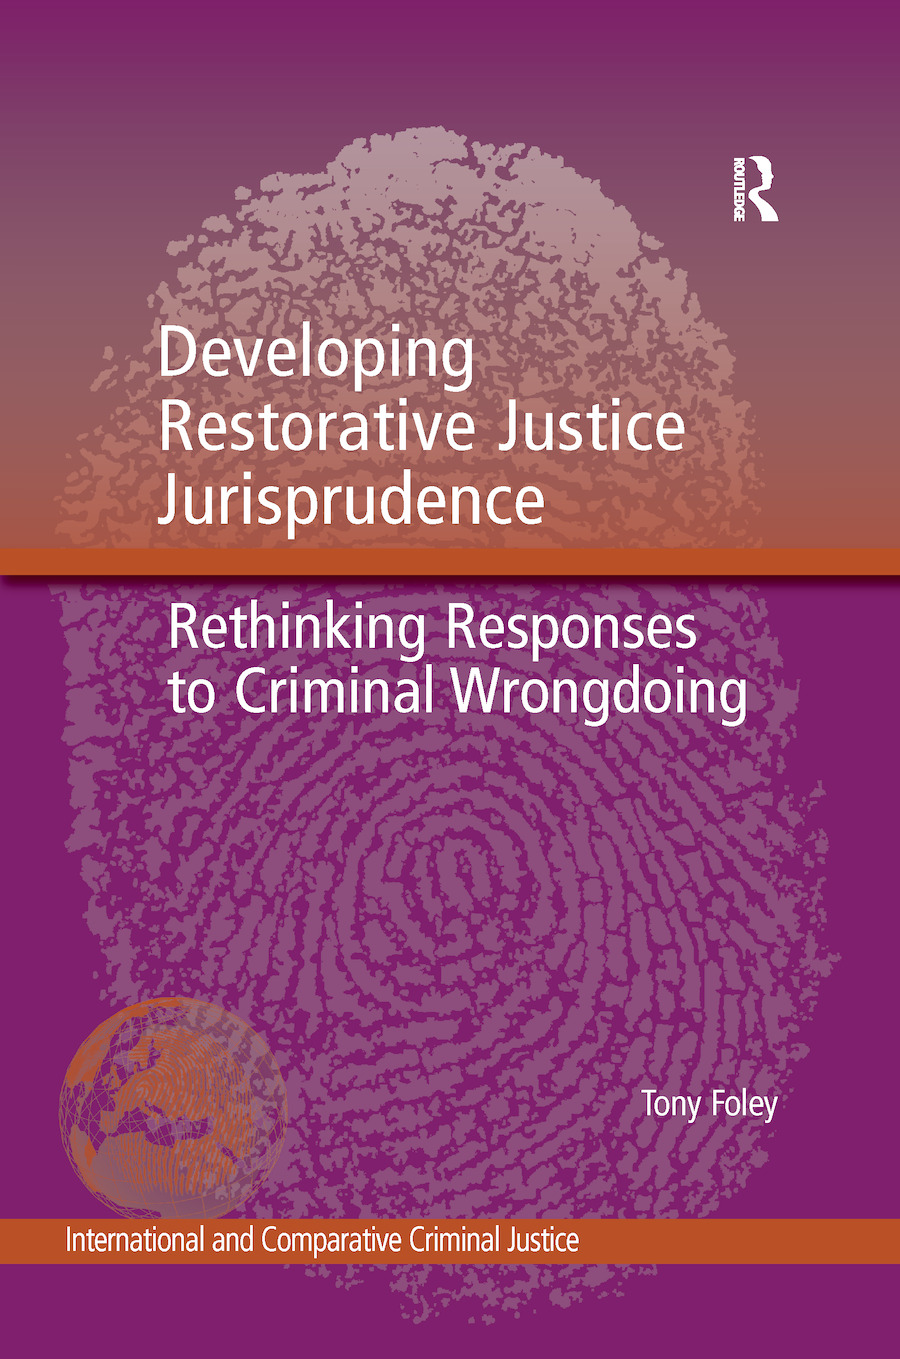 Developing Restorative Justice Jurisprudence: Rethinking Responses to Criminal Wrongdoing, 1st Edition (Paperback) book cover